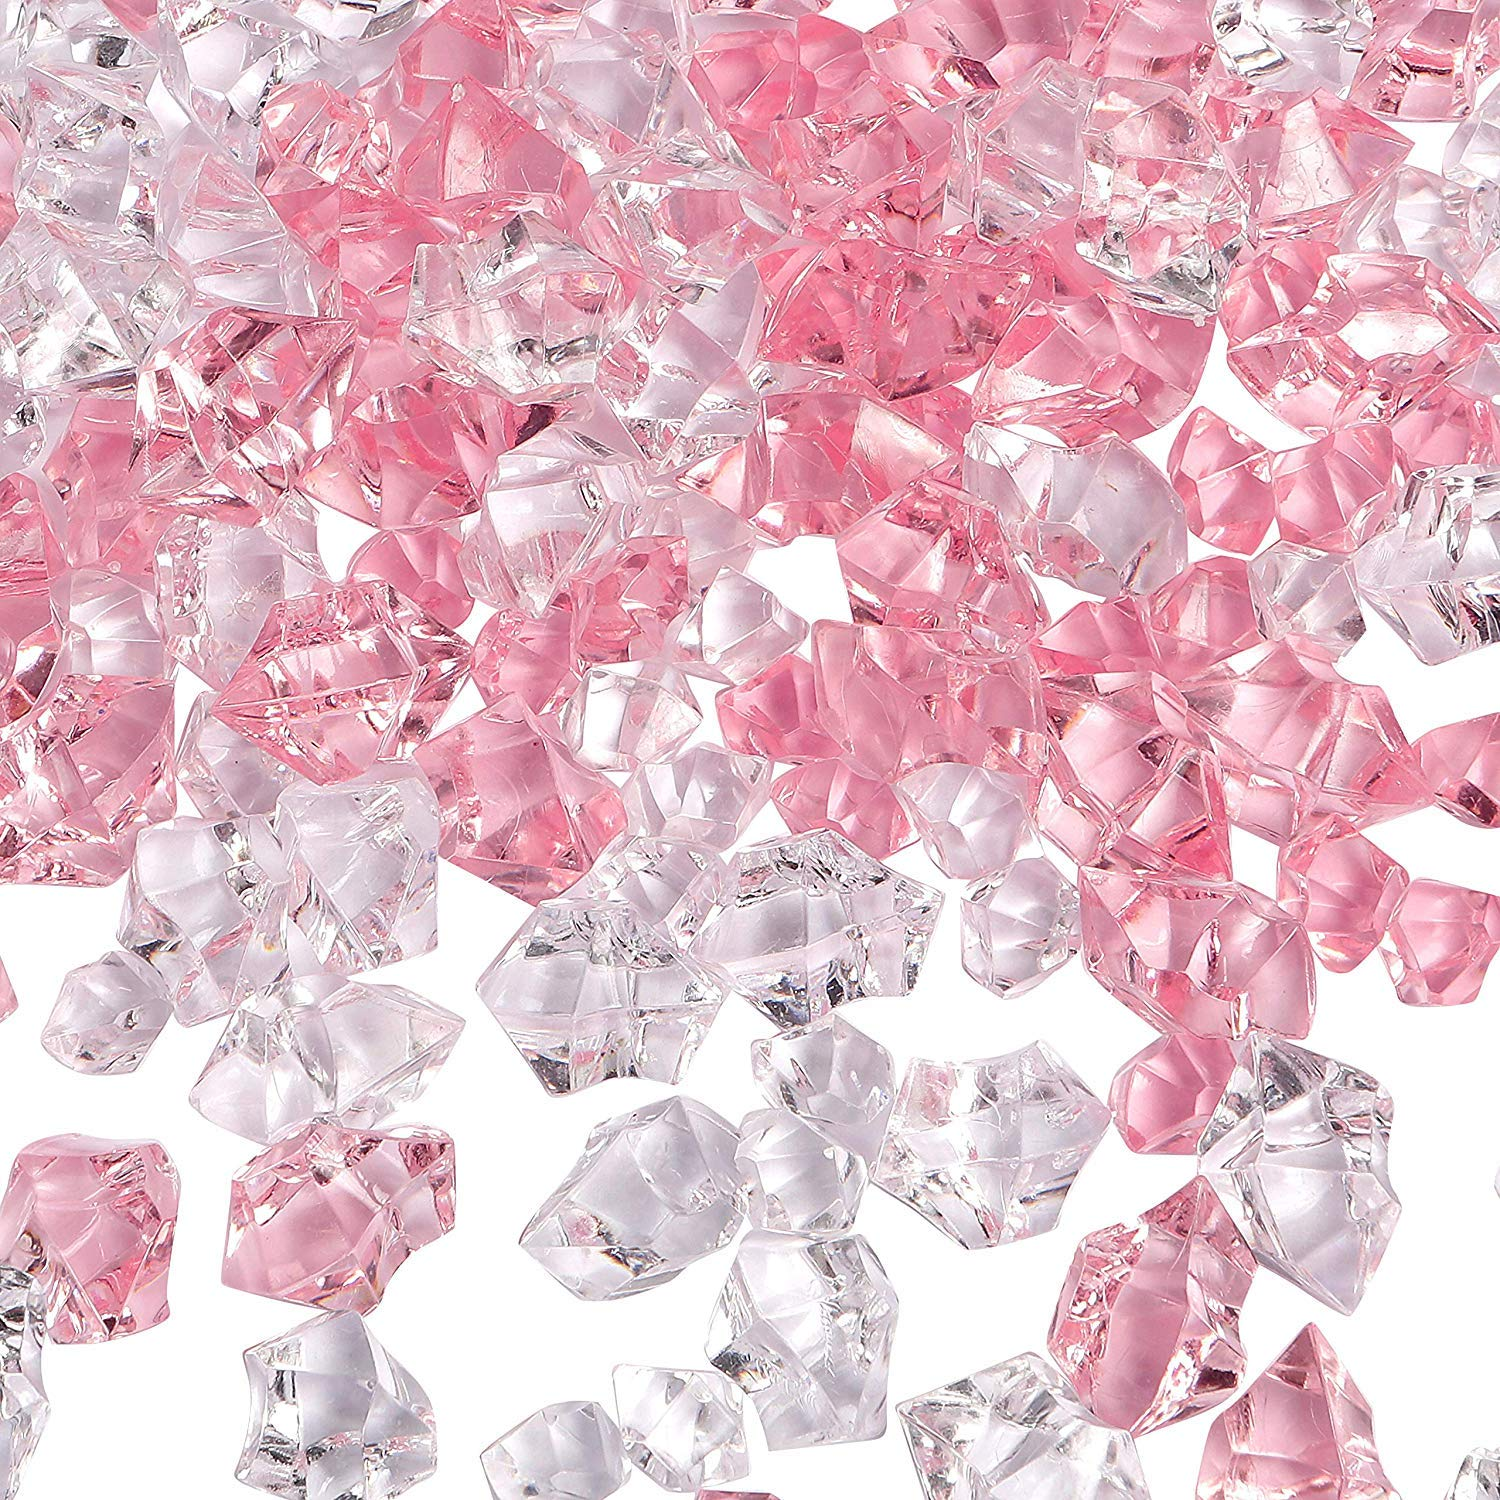 Acrylic Decorative Glass Pebbles (Pink Clear)